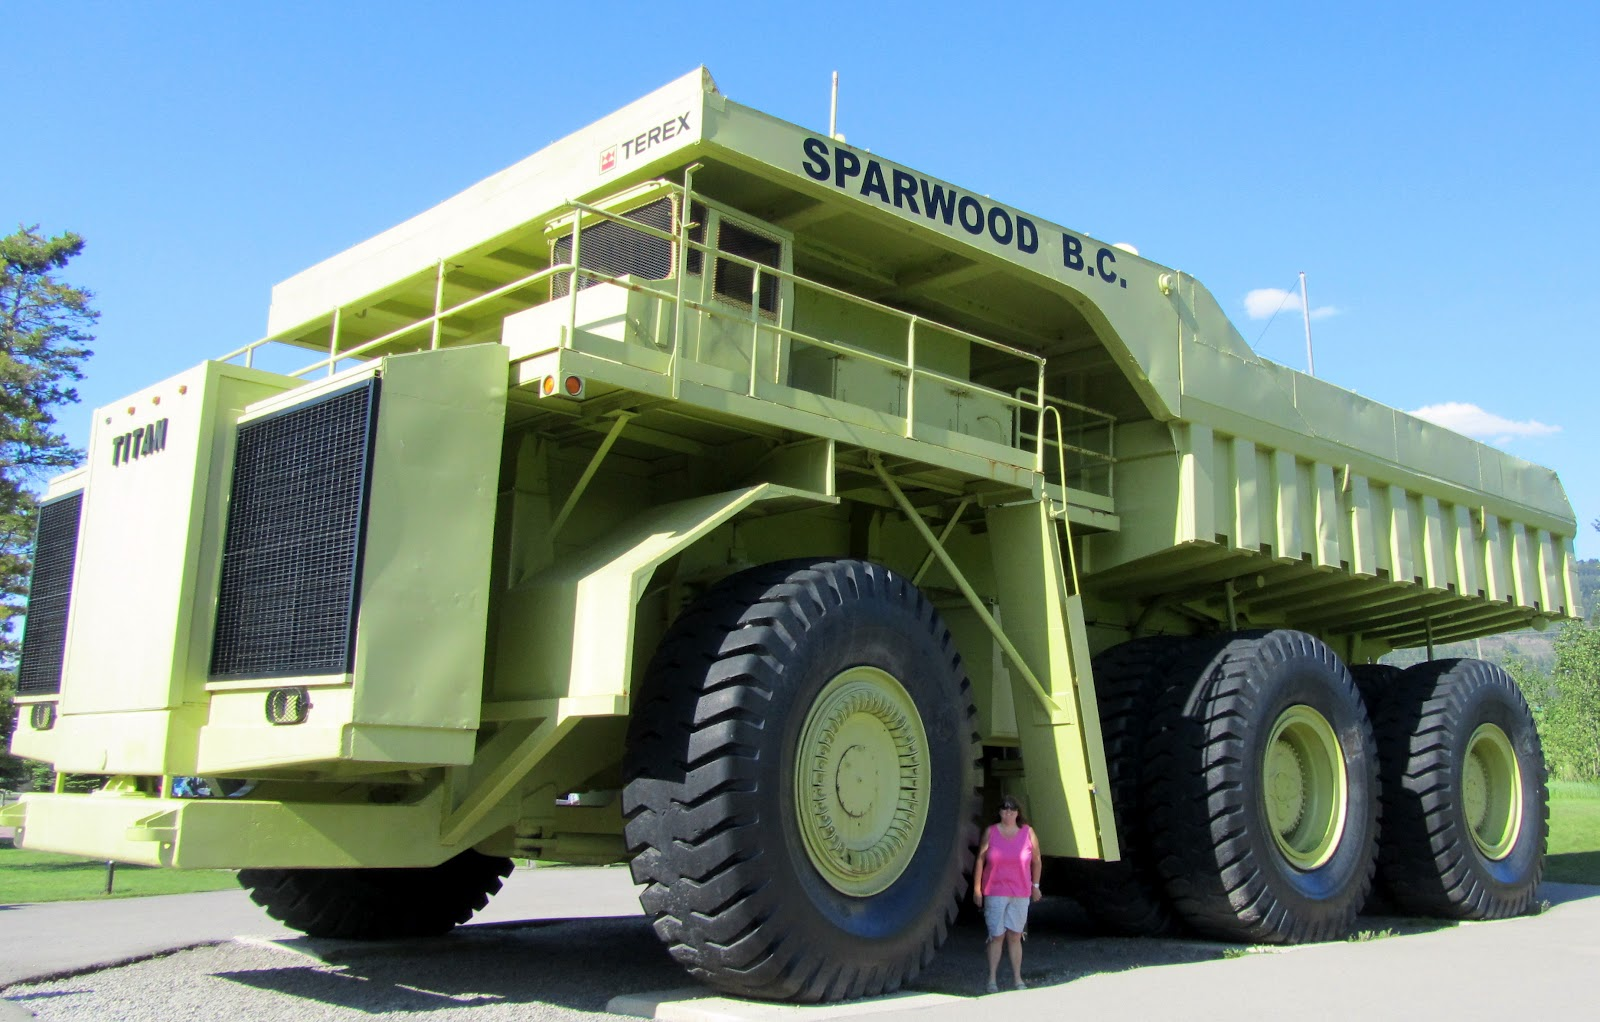 Biggest dump truck in the world